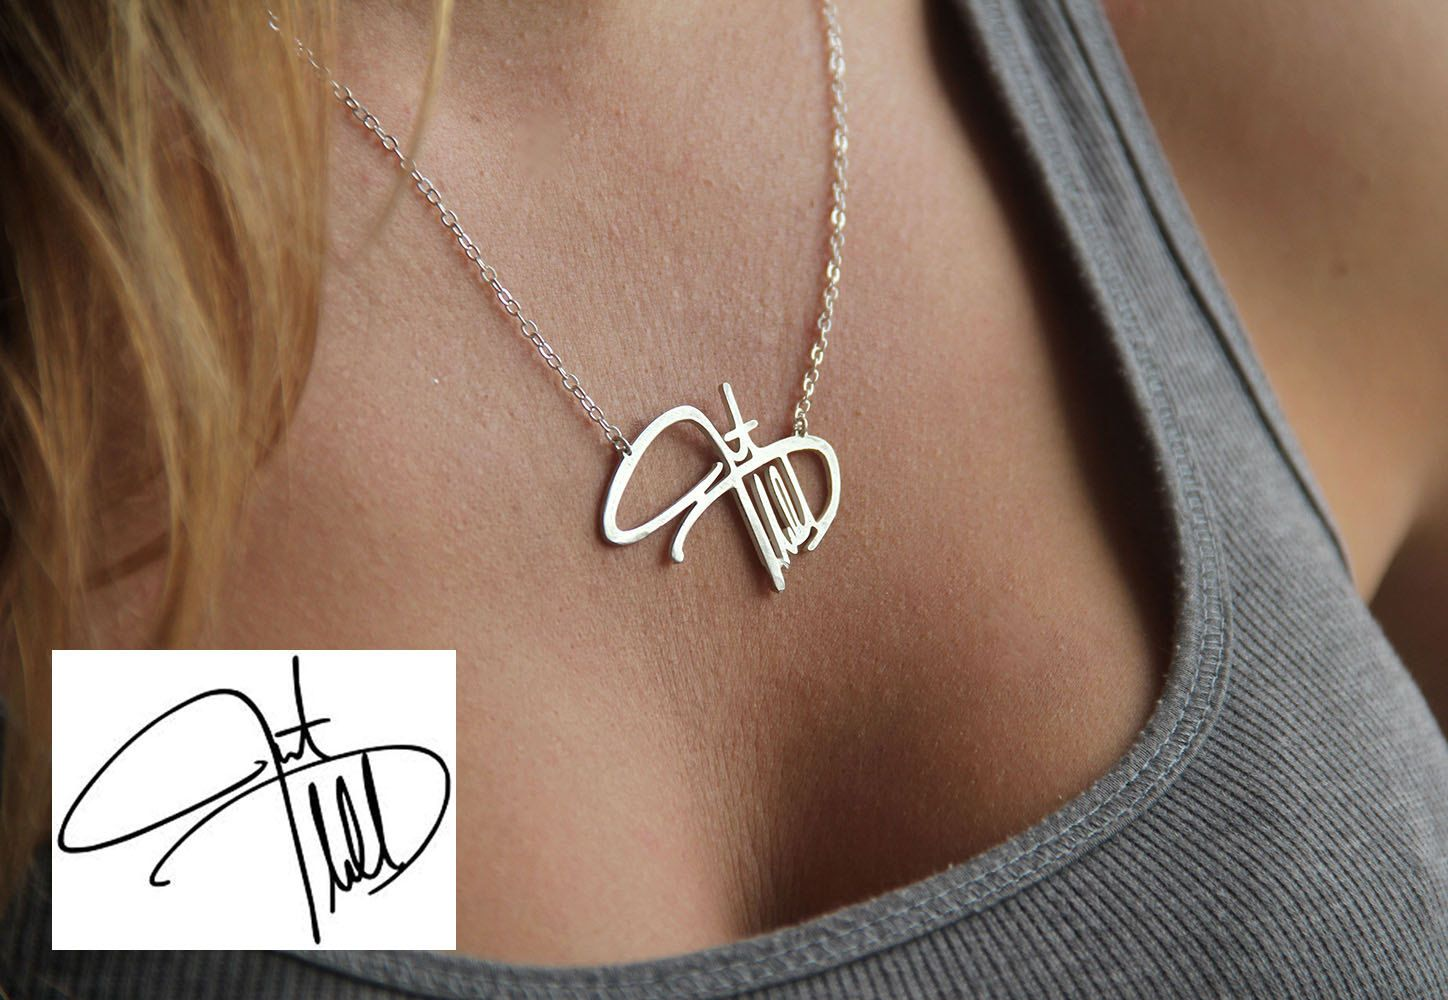 gold pendant daughter products silver from gift laser dancing girl engraved dad personal necklace dancer